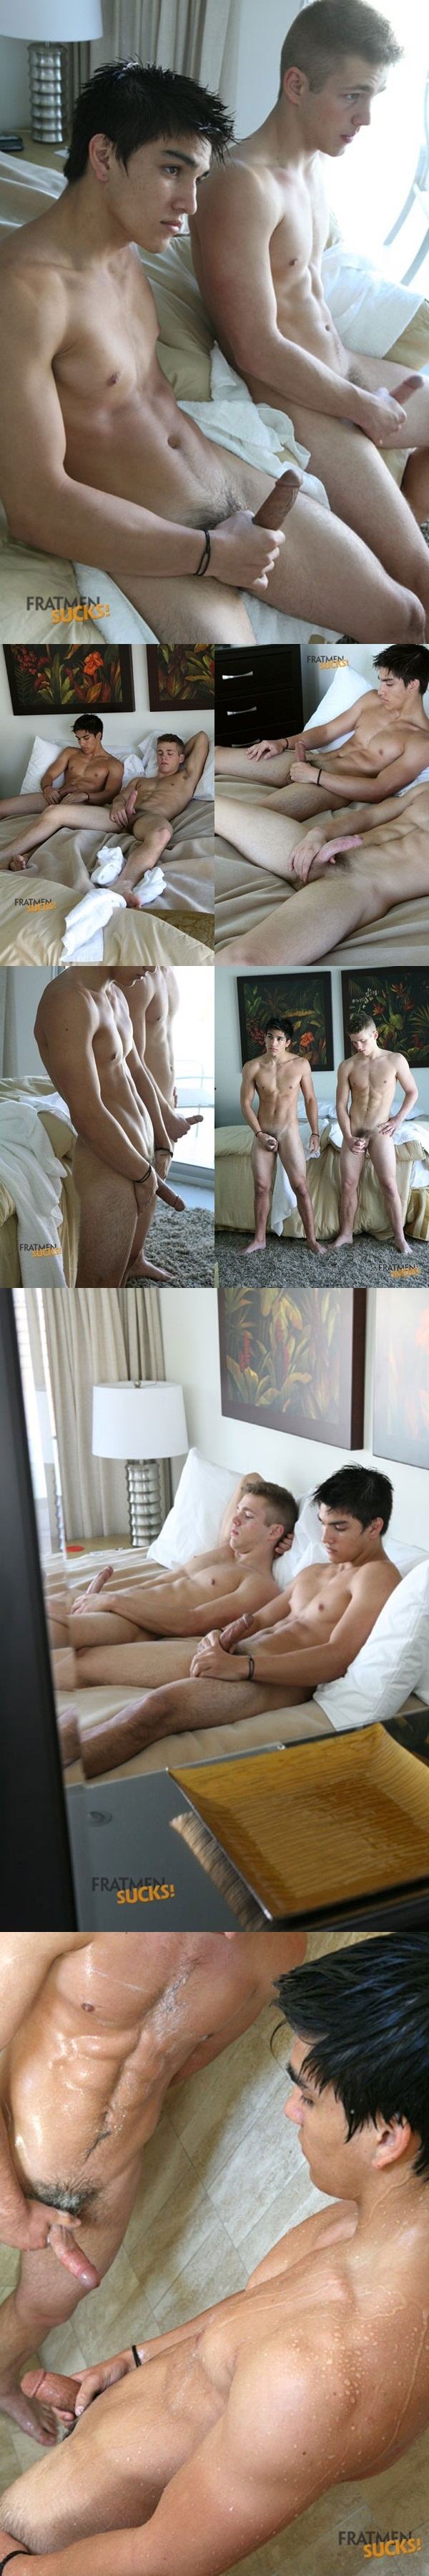 Fratmen Sucks two hot young naked college guys Fratmen Dean and Fratmen Diego jerk in the shower 1 download full movie torrents and gay porn photo gallery